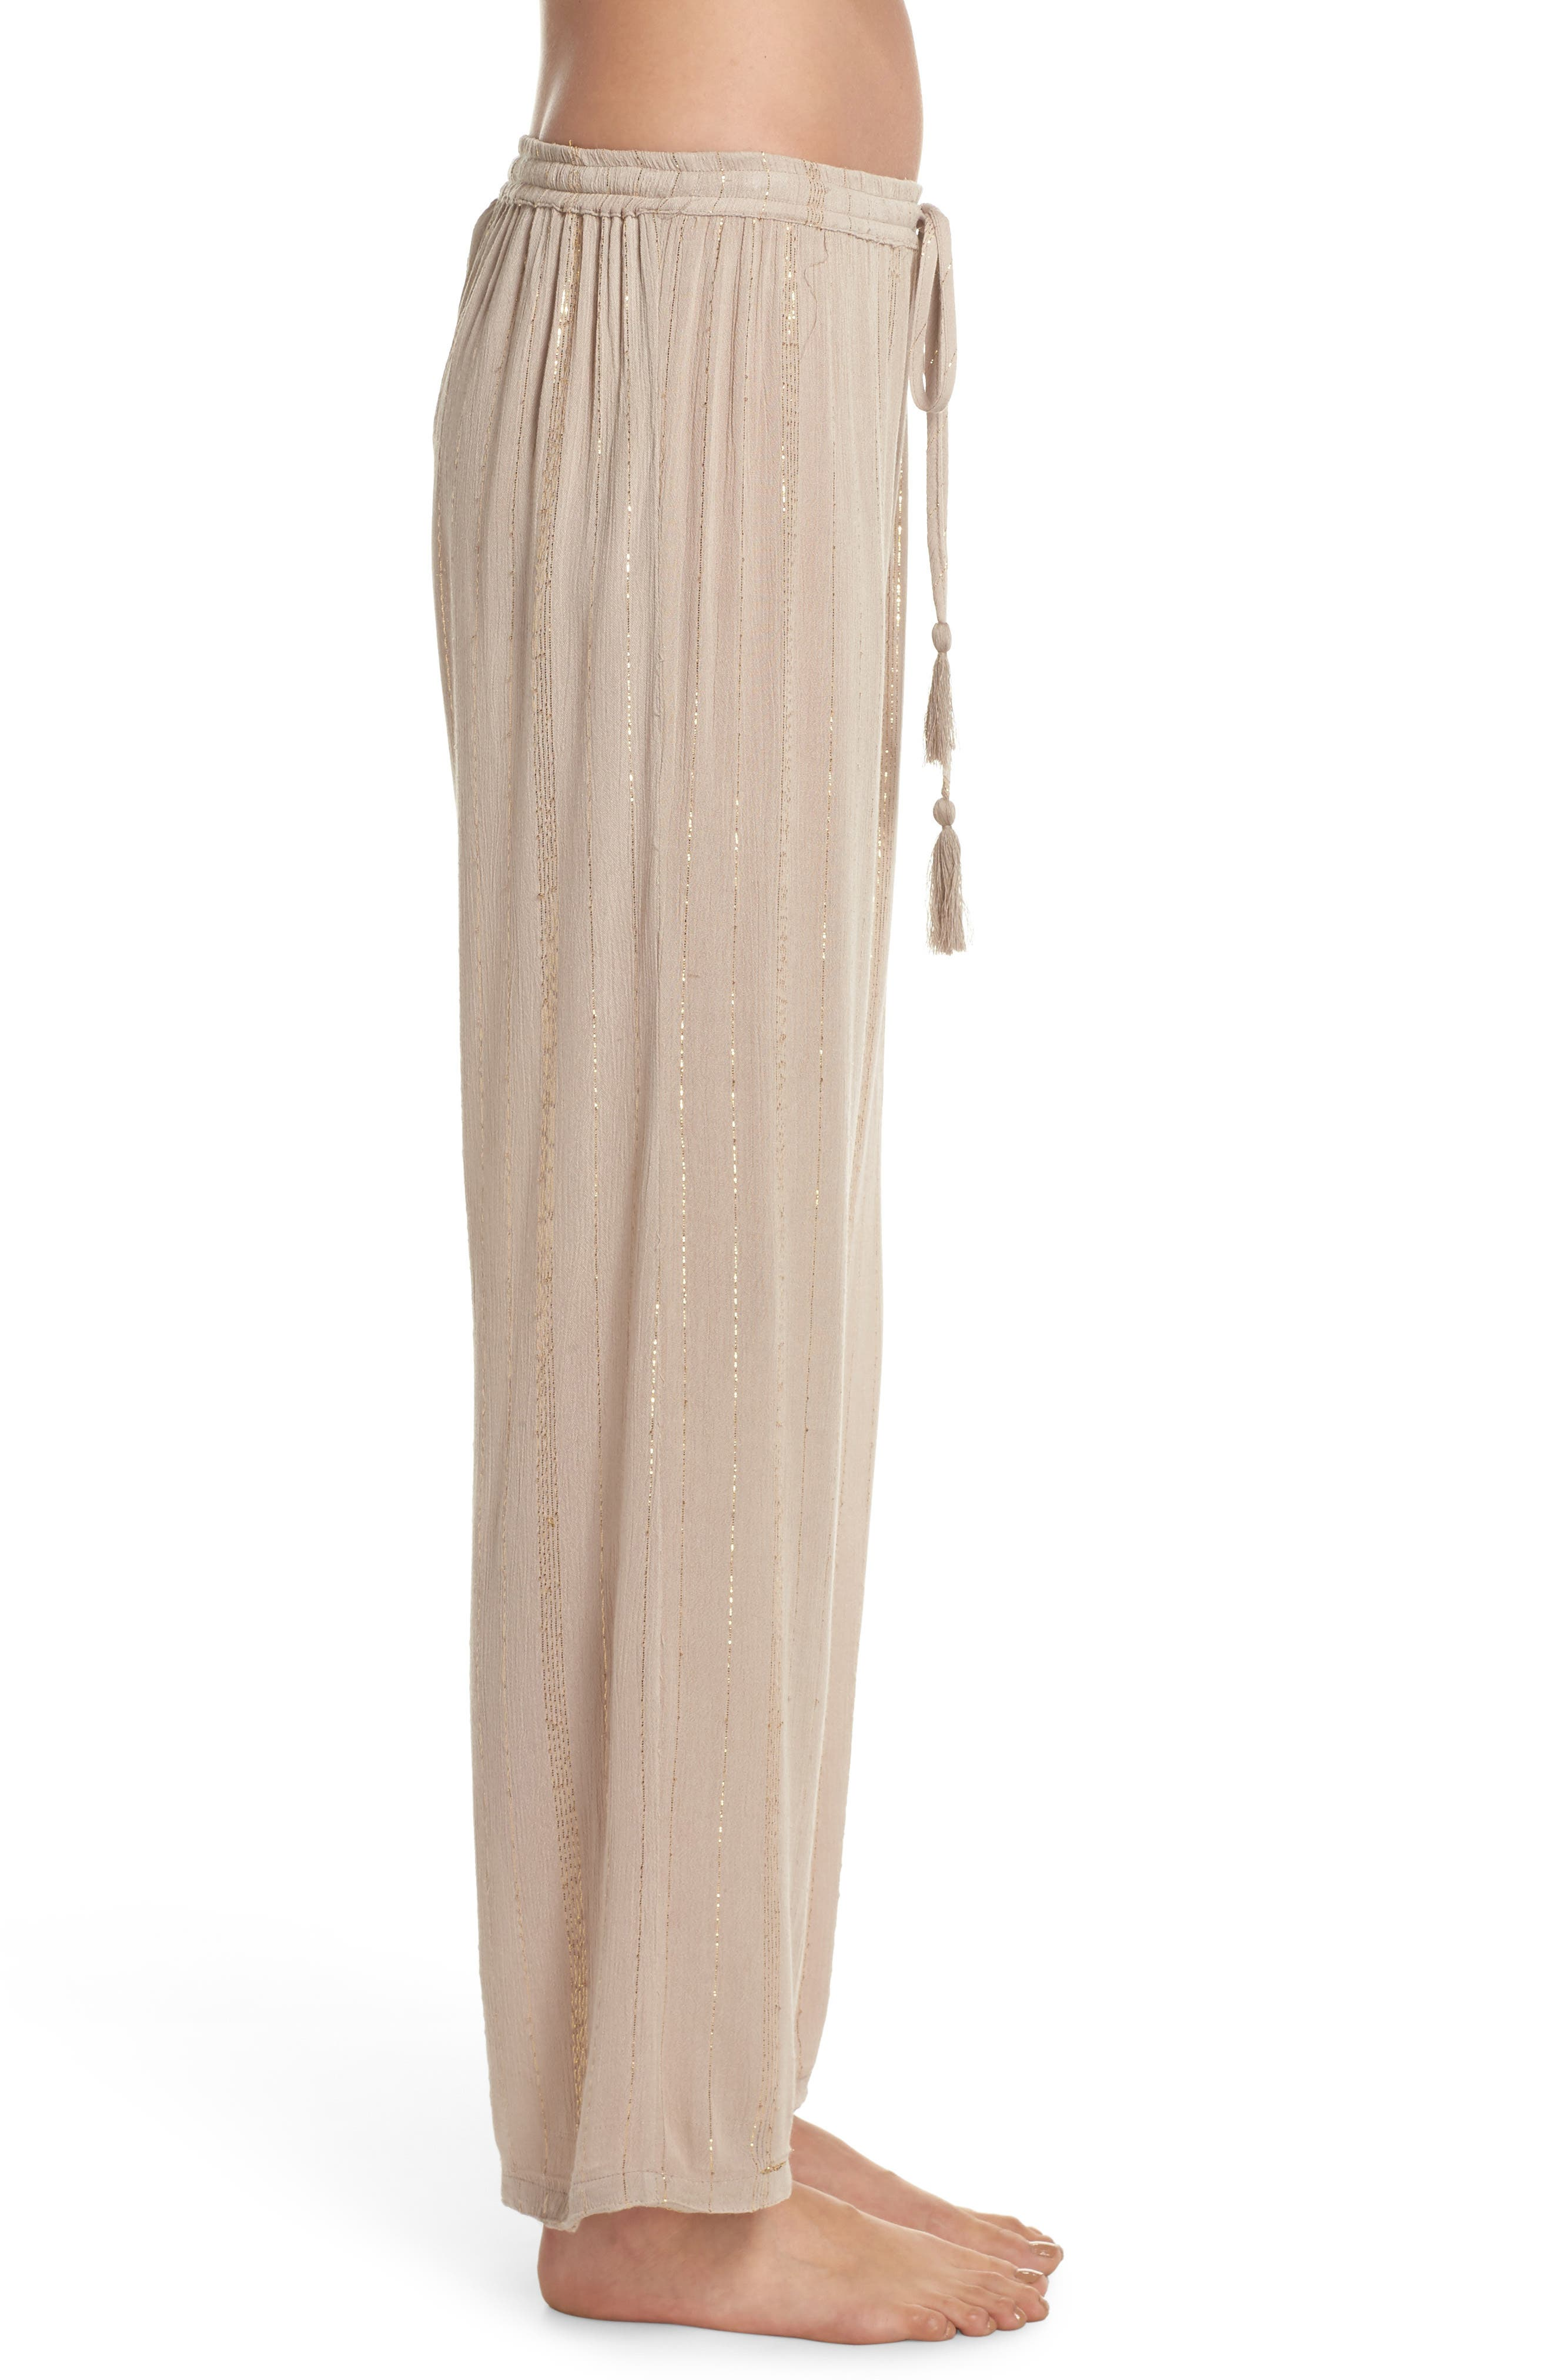 Iris Cover-Up Pants,                             Alternate thumbnail 3, color,                             Taupe/ Gold